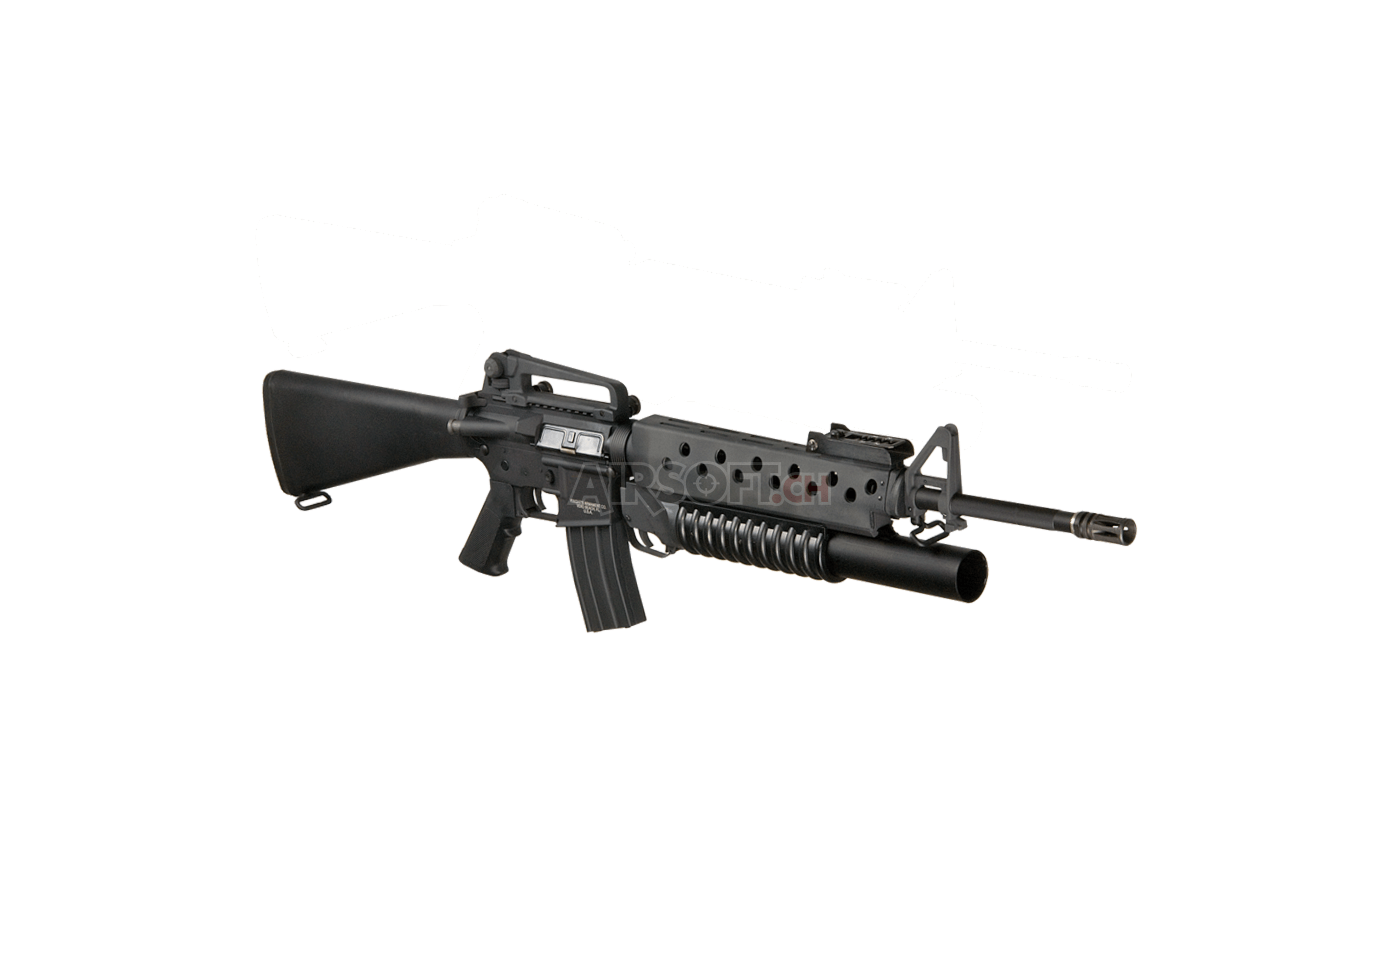 M16A3 with M203 Grenade Launcher Black (G&P) - AEG ... M16a3 M203